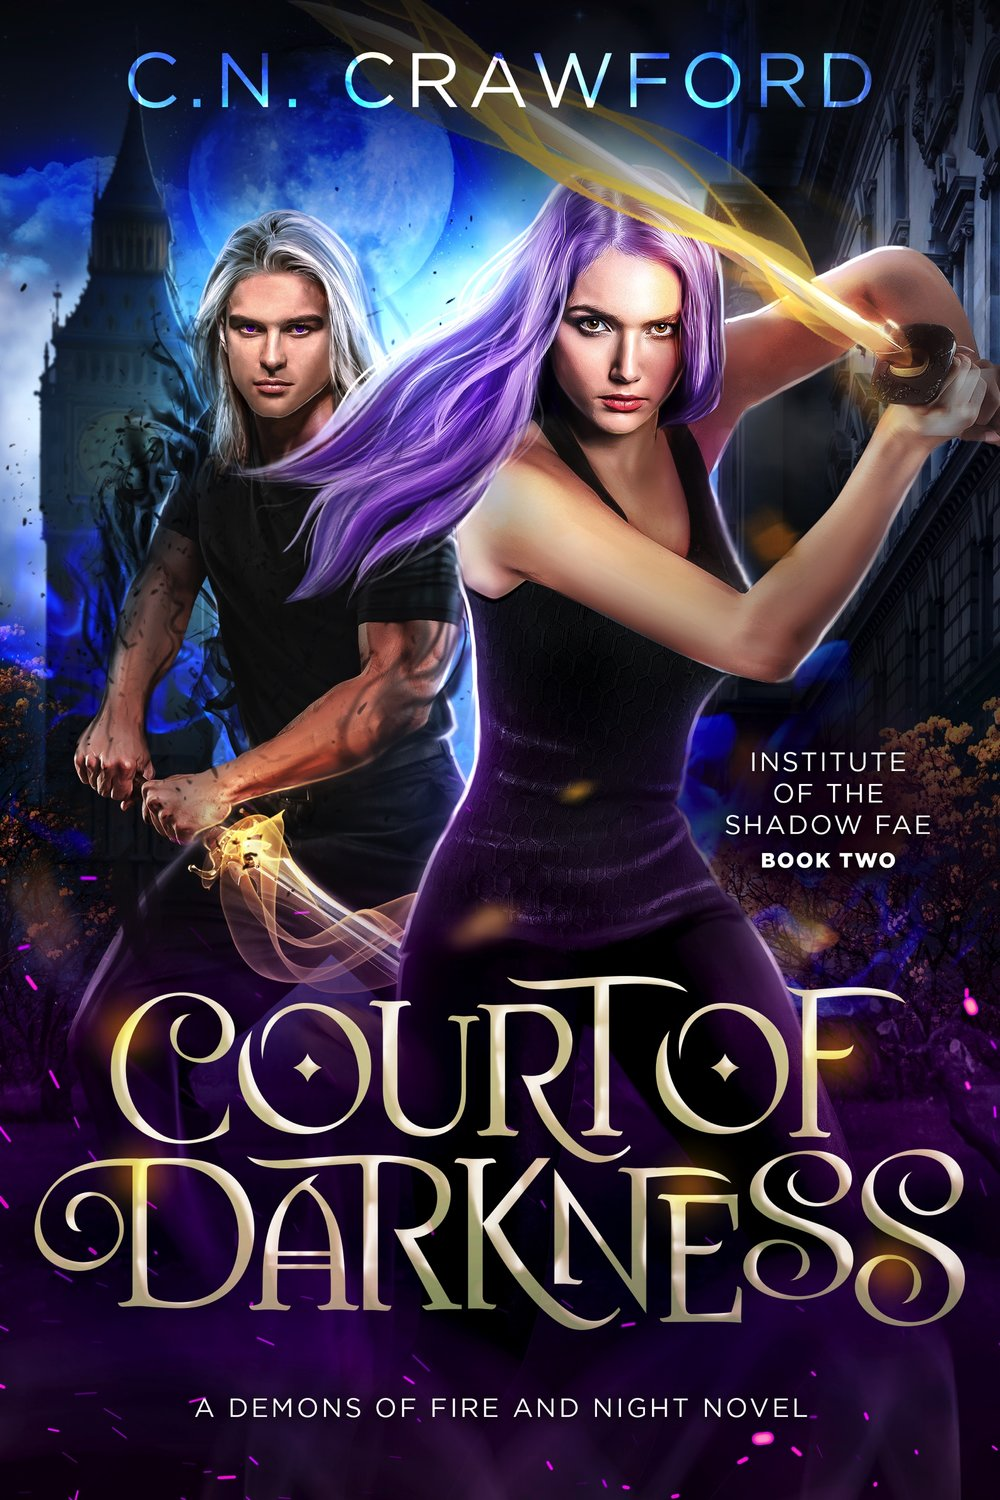 Court-of-Darkness-Kindle.jpg